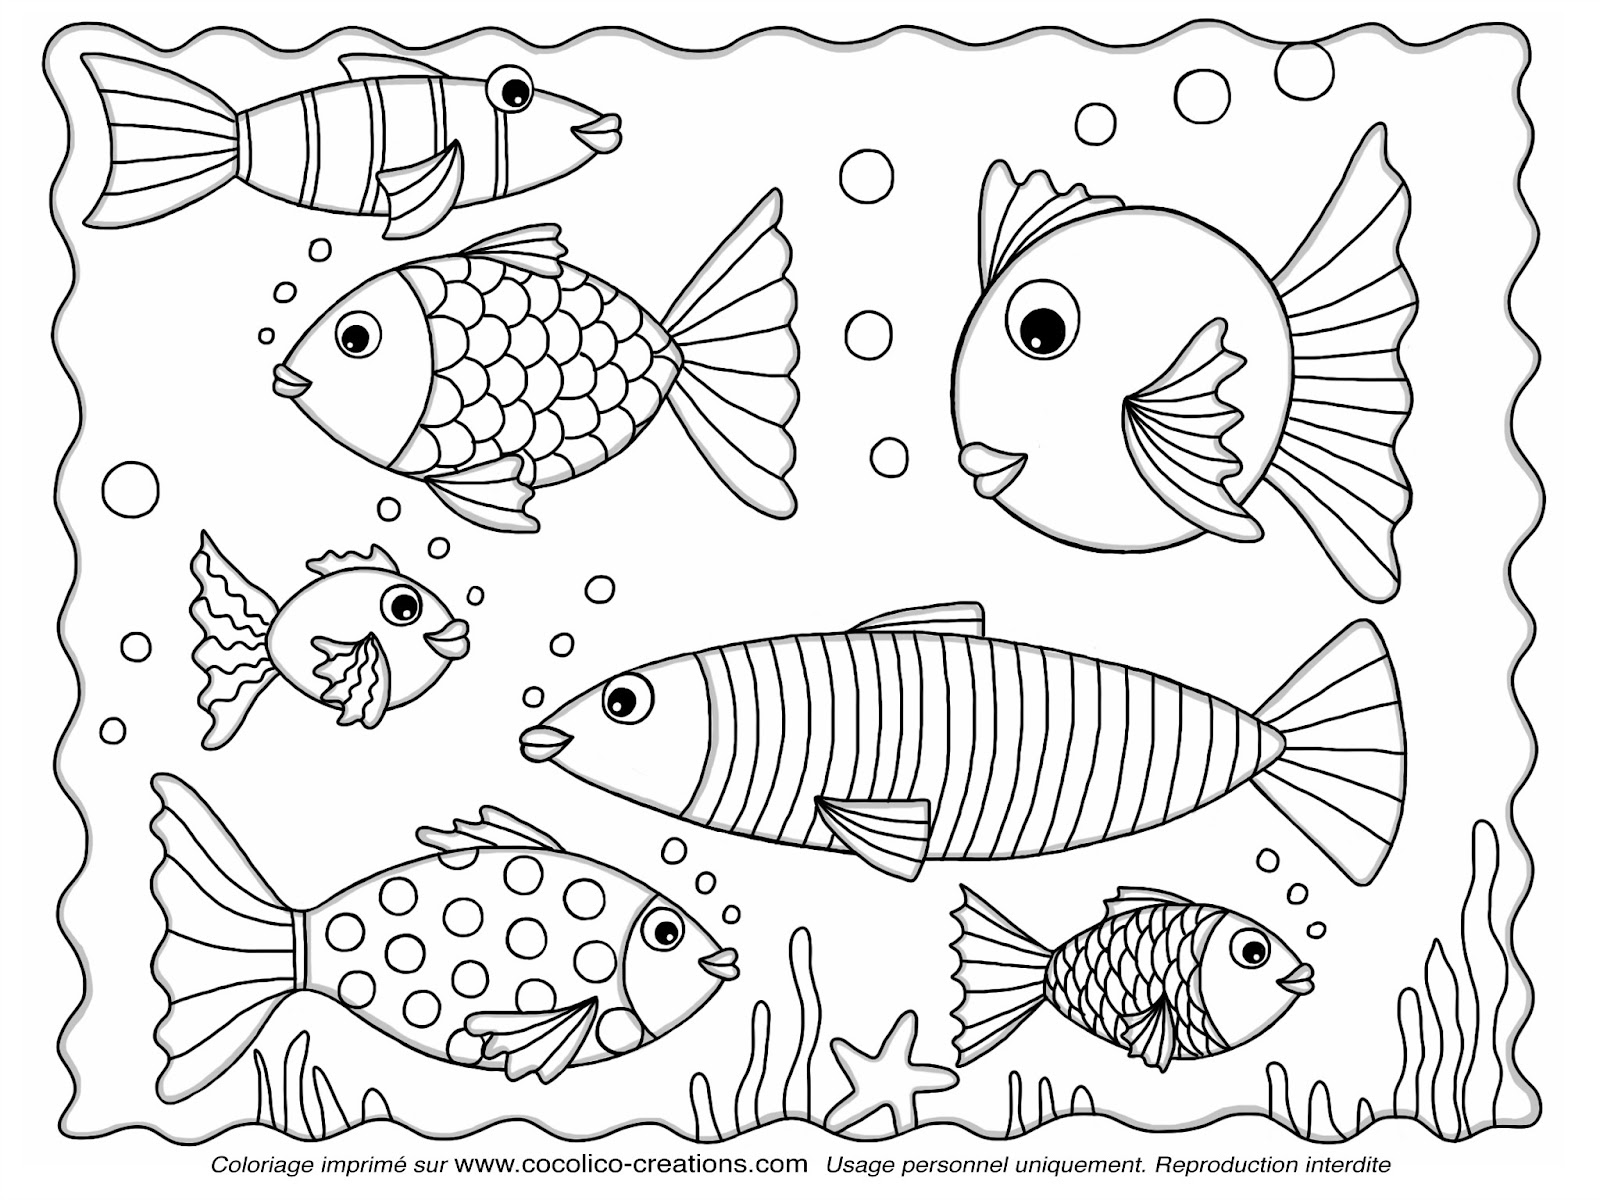 Unique Image De Poisson à Colorier